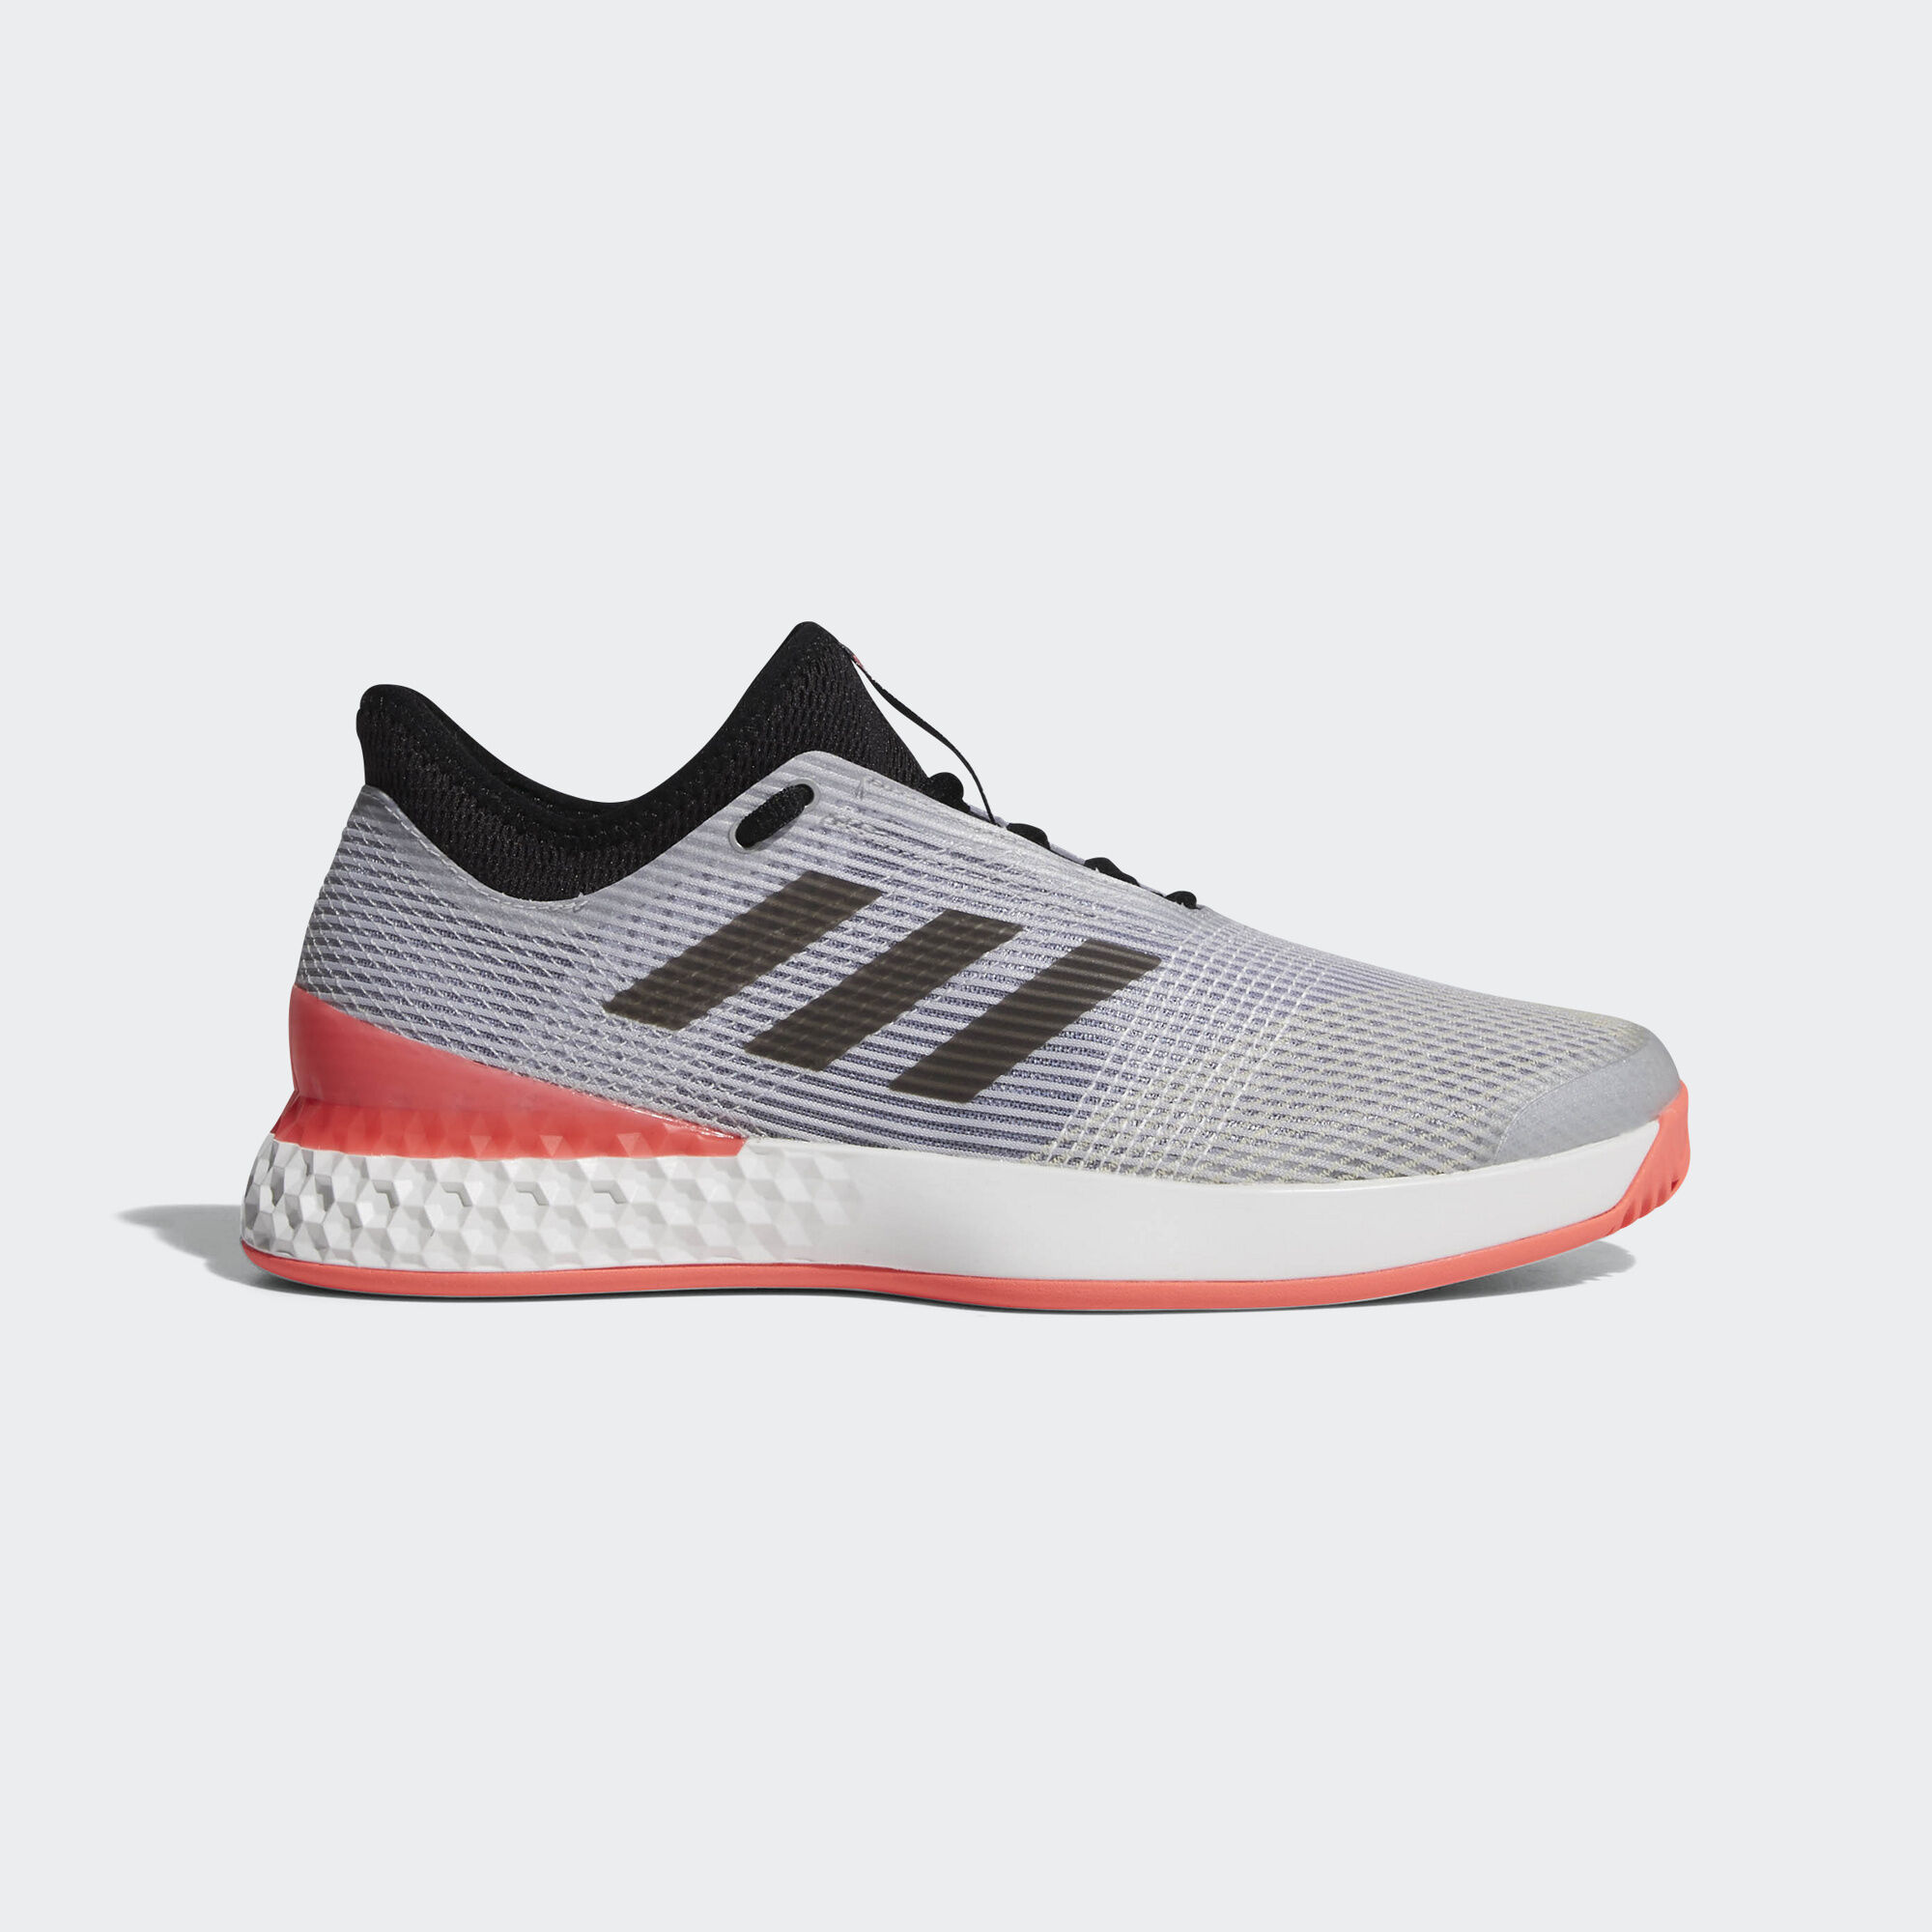 online store 1fcbc ae9fc adidas - Adizero Ubersonic 3.0 Shoes Grey  Core Black  Flash Red CP8853.  Men Tennis